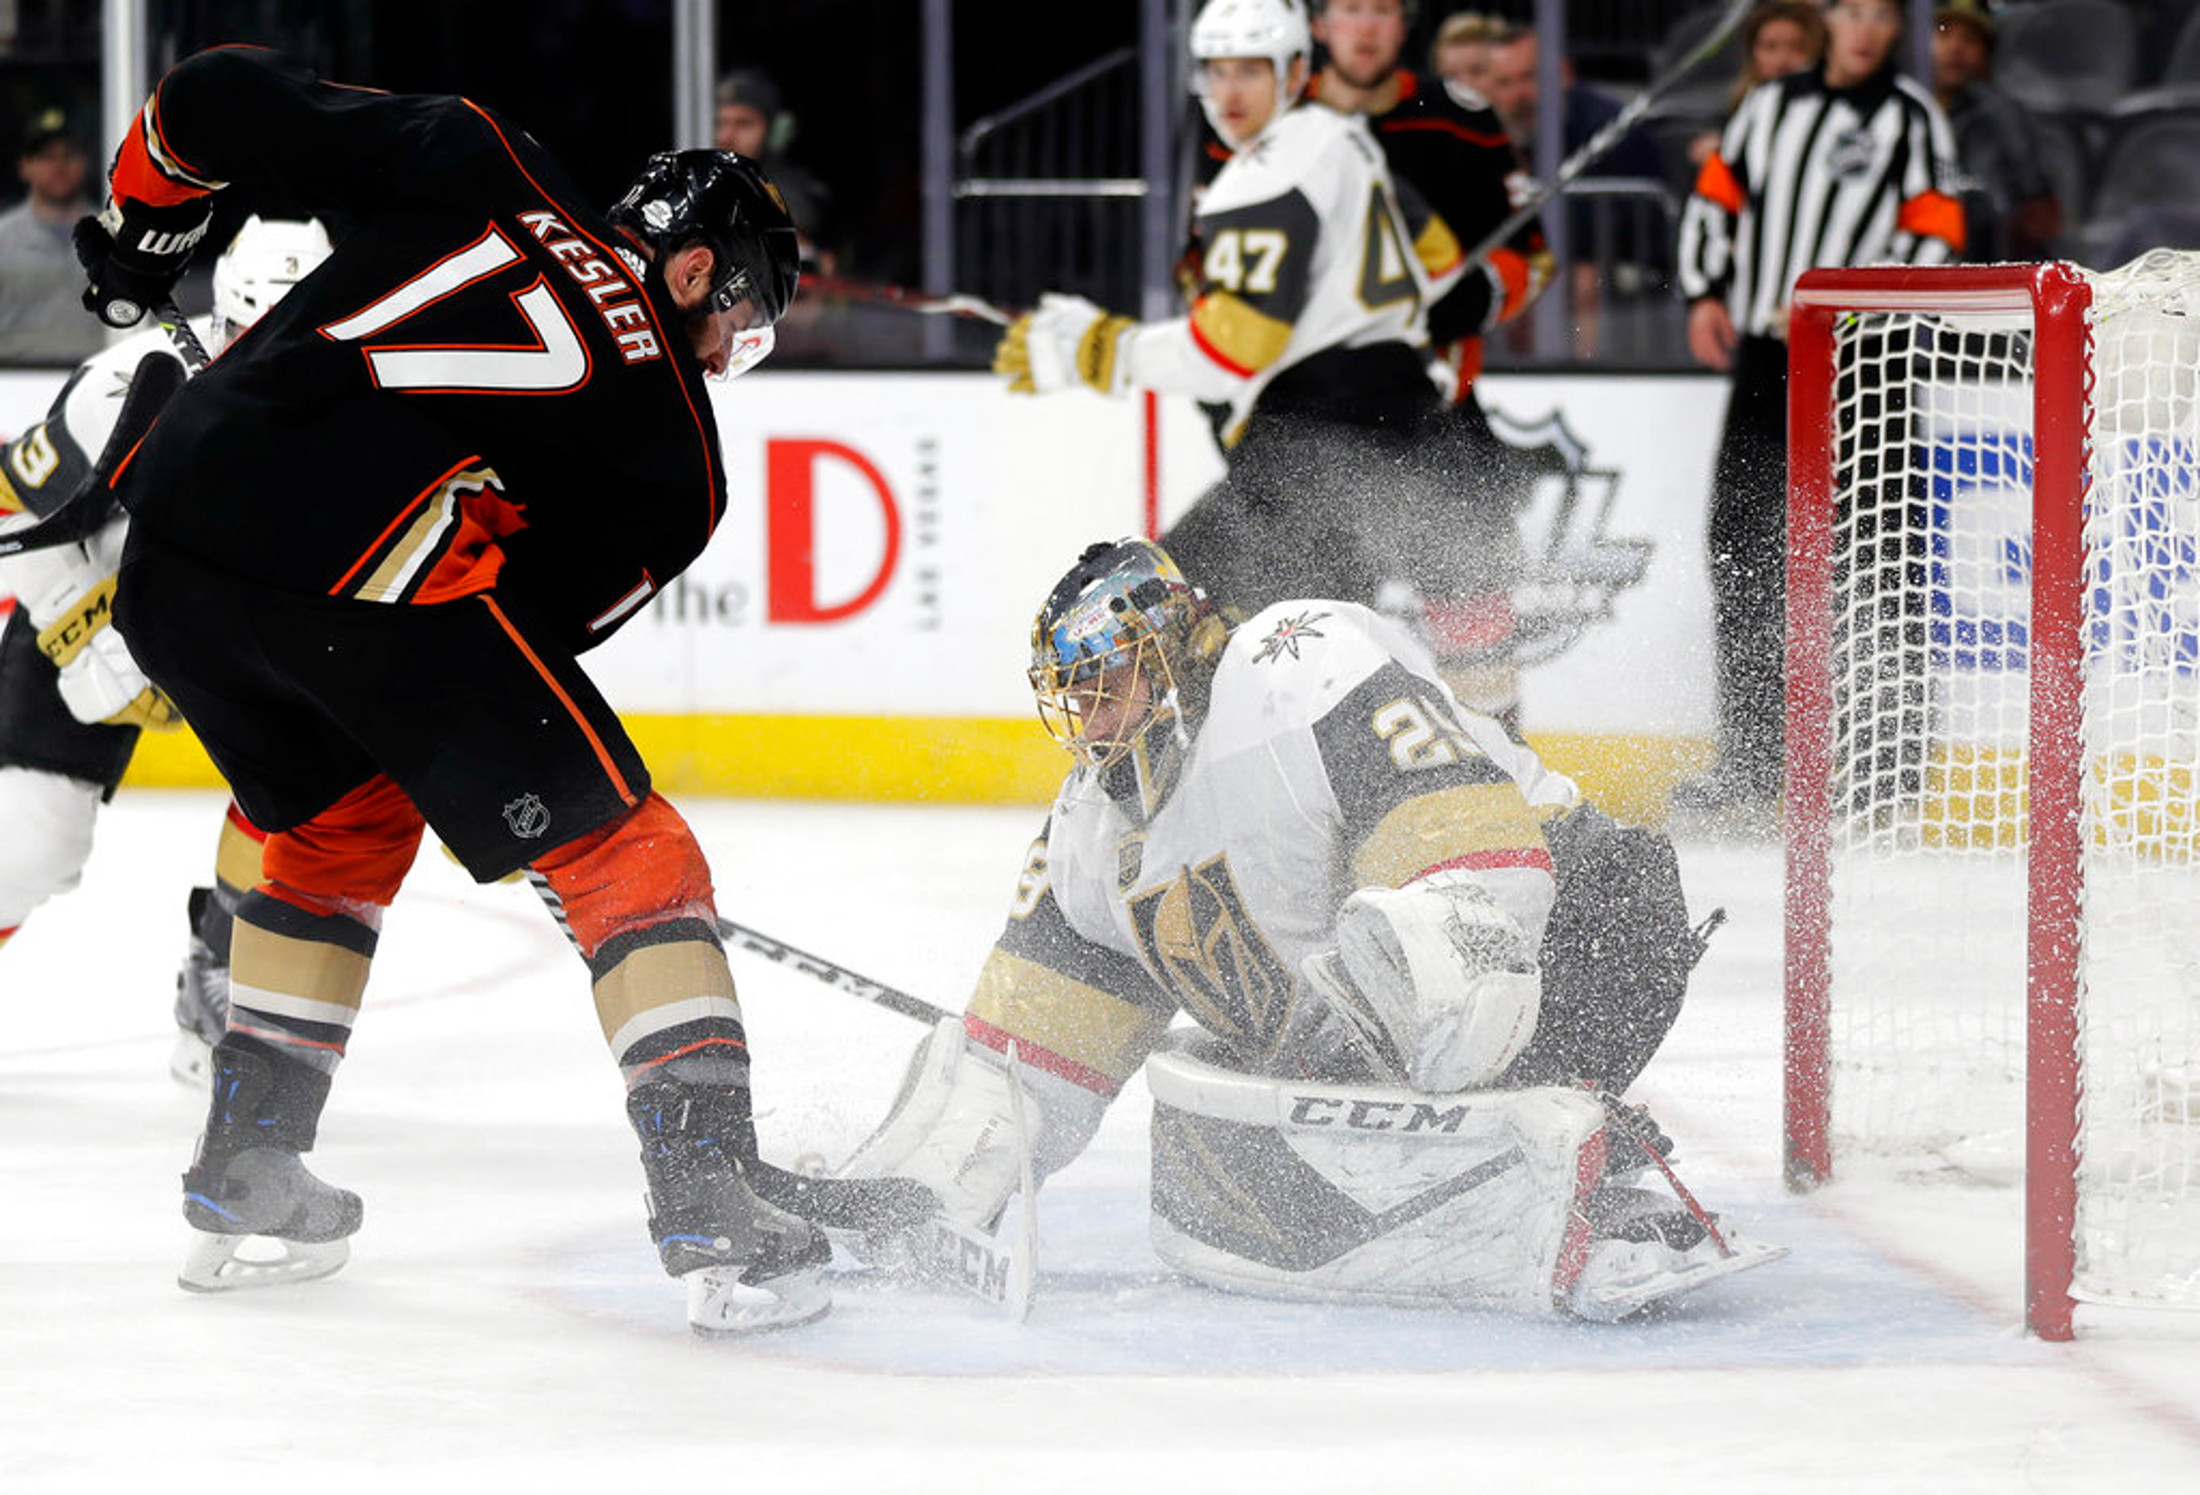 Vegas Golden Knights goalie Marc-Andre Fleury stops a shot from Anaheim Ducks center Ryan Kesleduring the third period of an NHL hockey game Monday, Feb. 19, 2018, in Las Vegas. Anaheim won, 2-0. (AP Photo/Isaac Brekken)